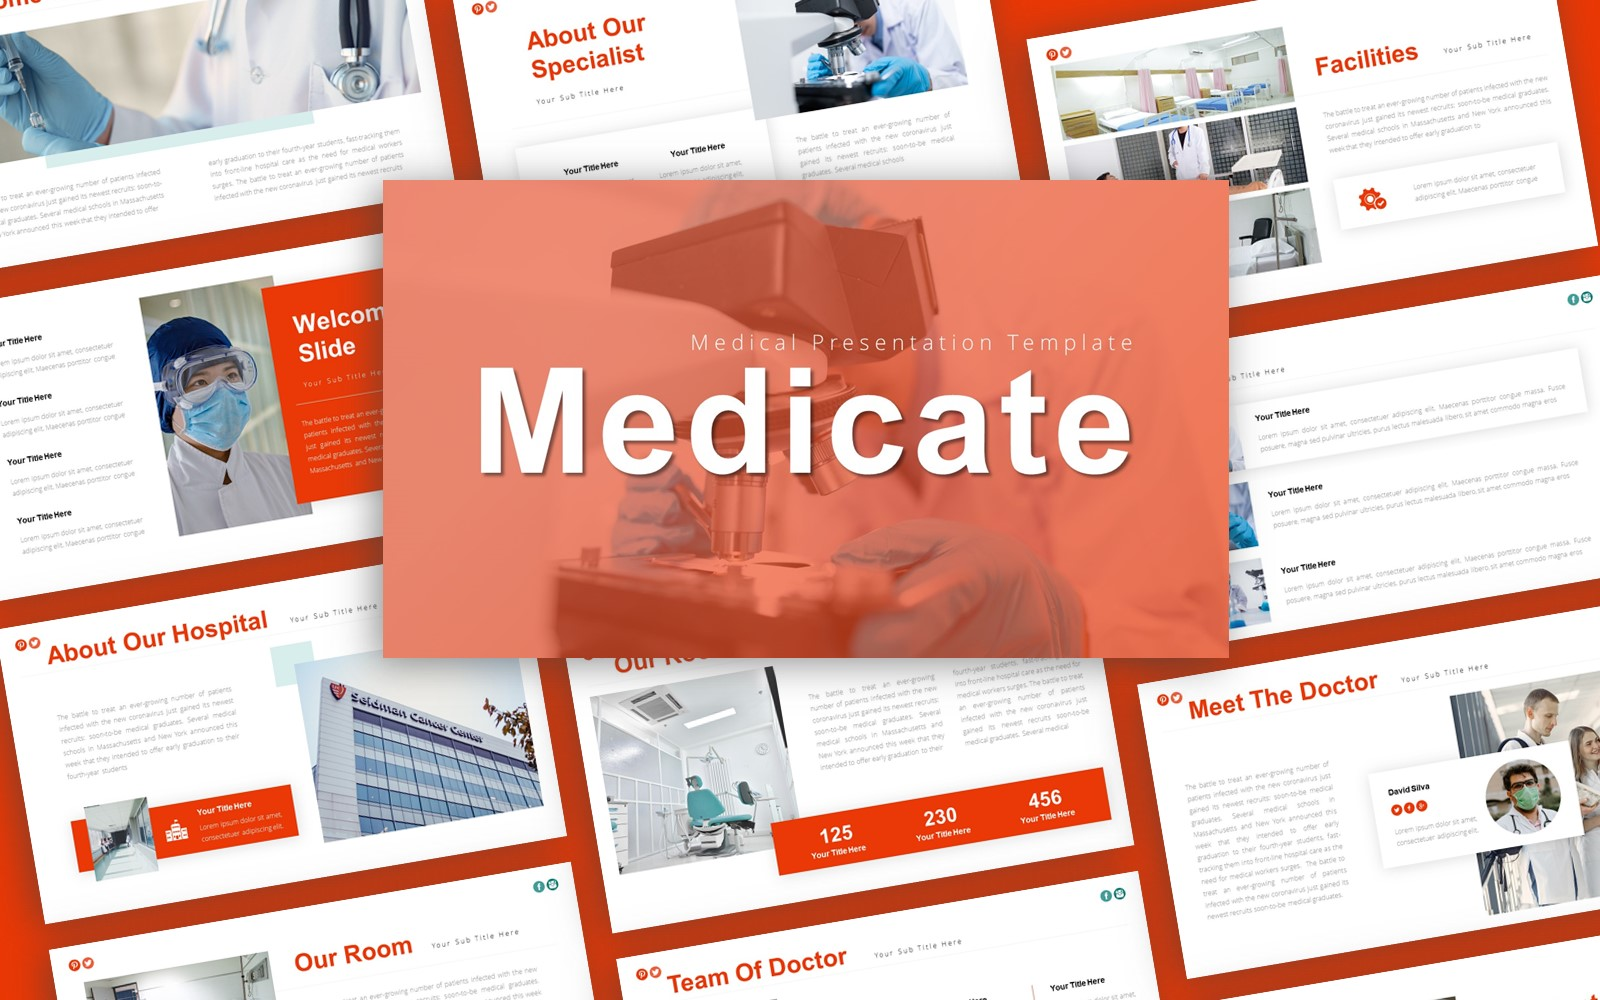 Medicate Medical Presentation PowerPoint Template